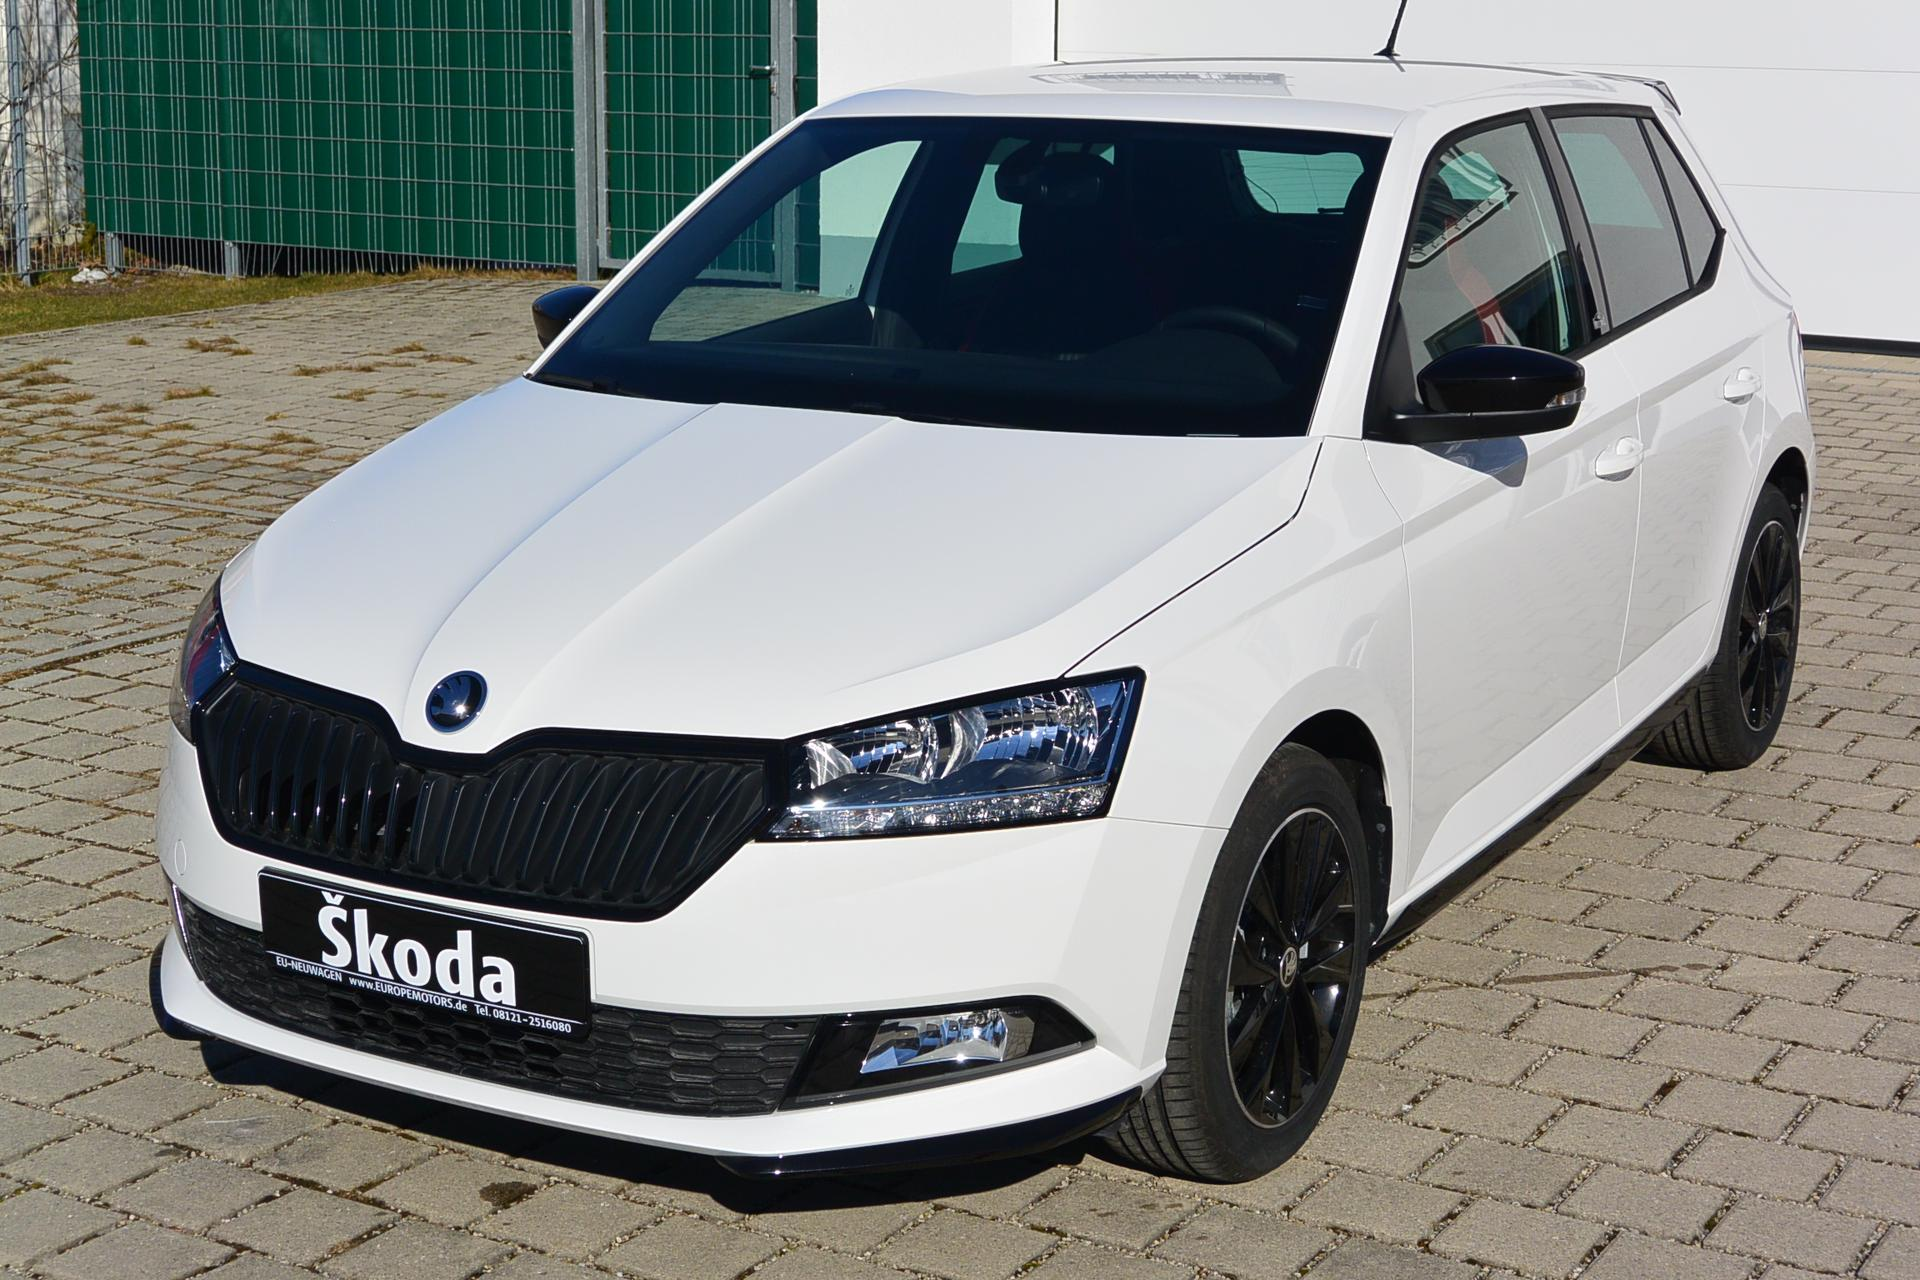 skoda fabia lim monte carlo 1 0 tsi 70 kw 95 ps 5 jahre. Black Bedroom Furniture Sets. Home Design Ideas